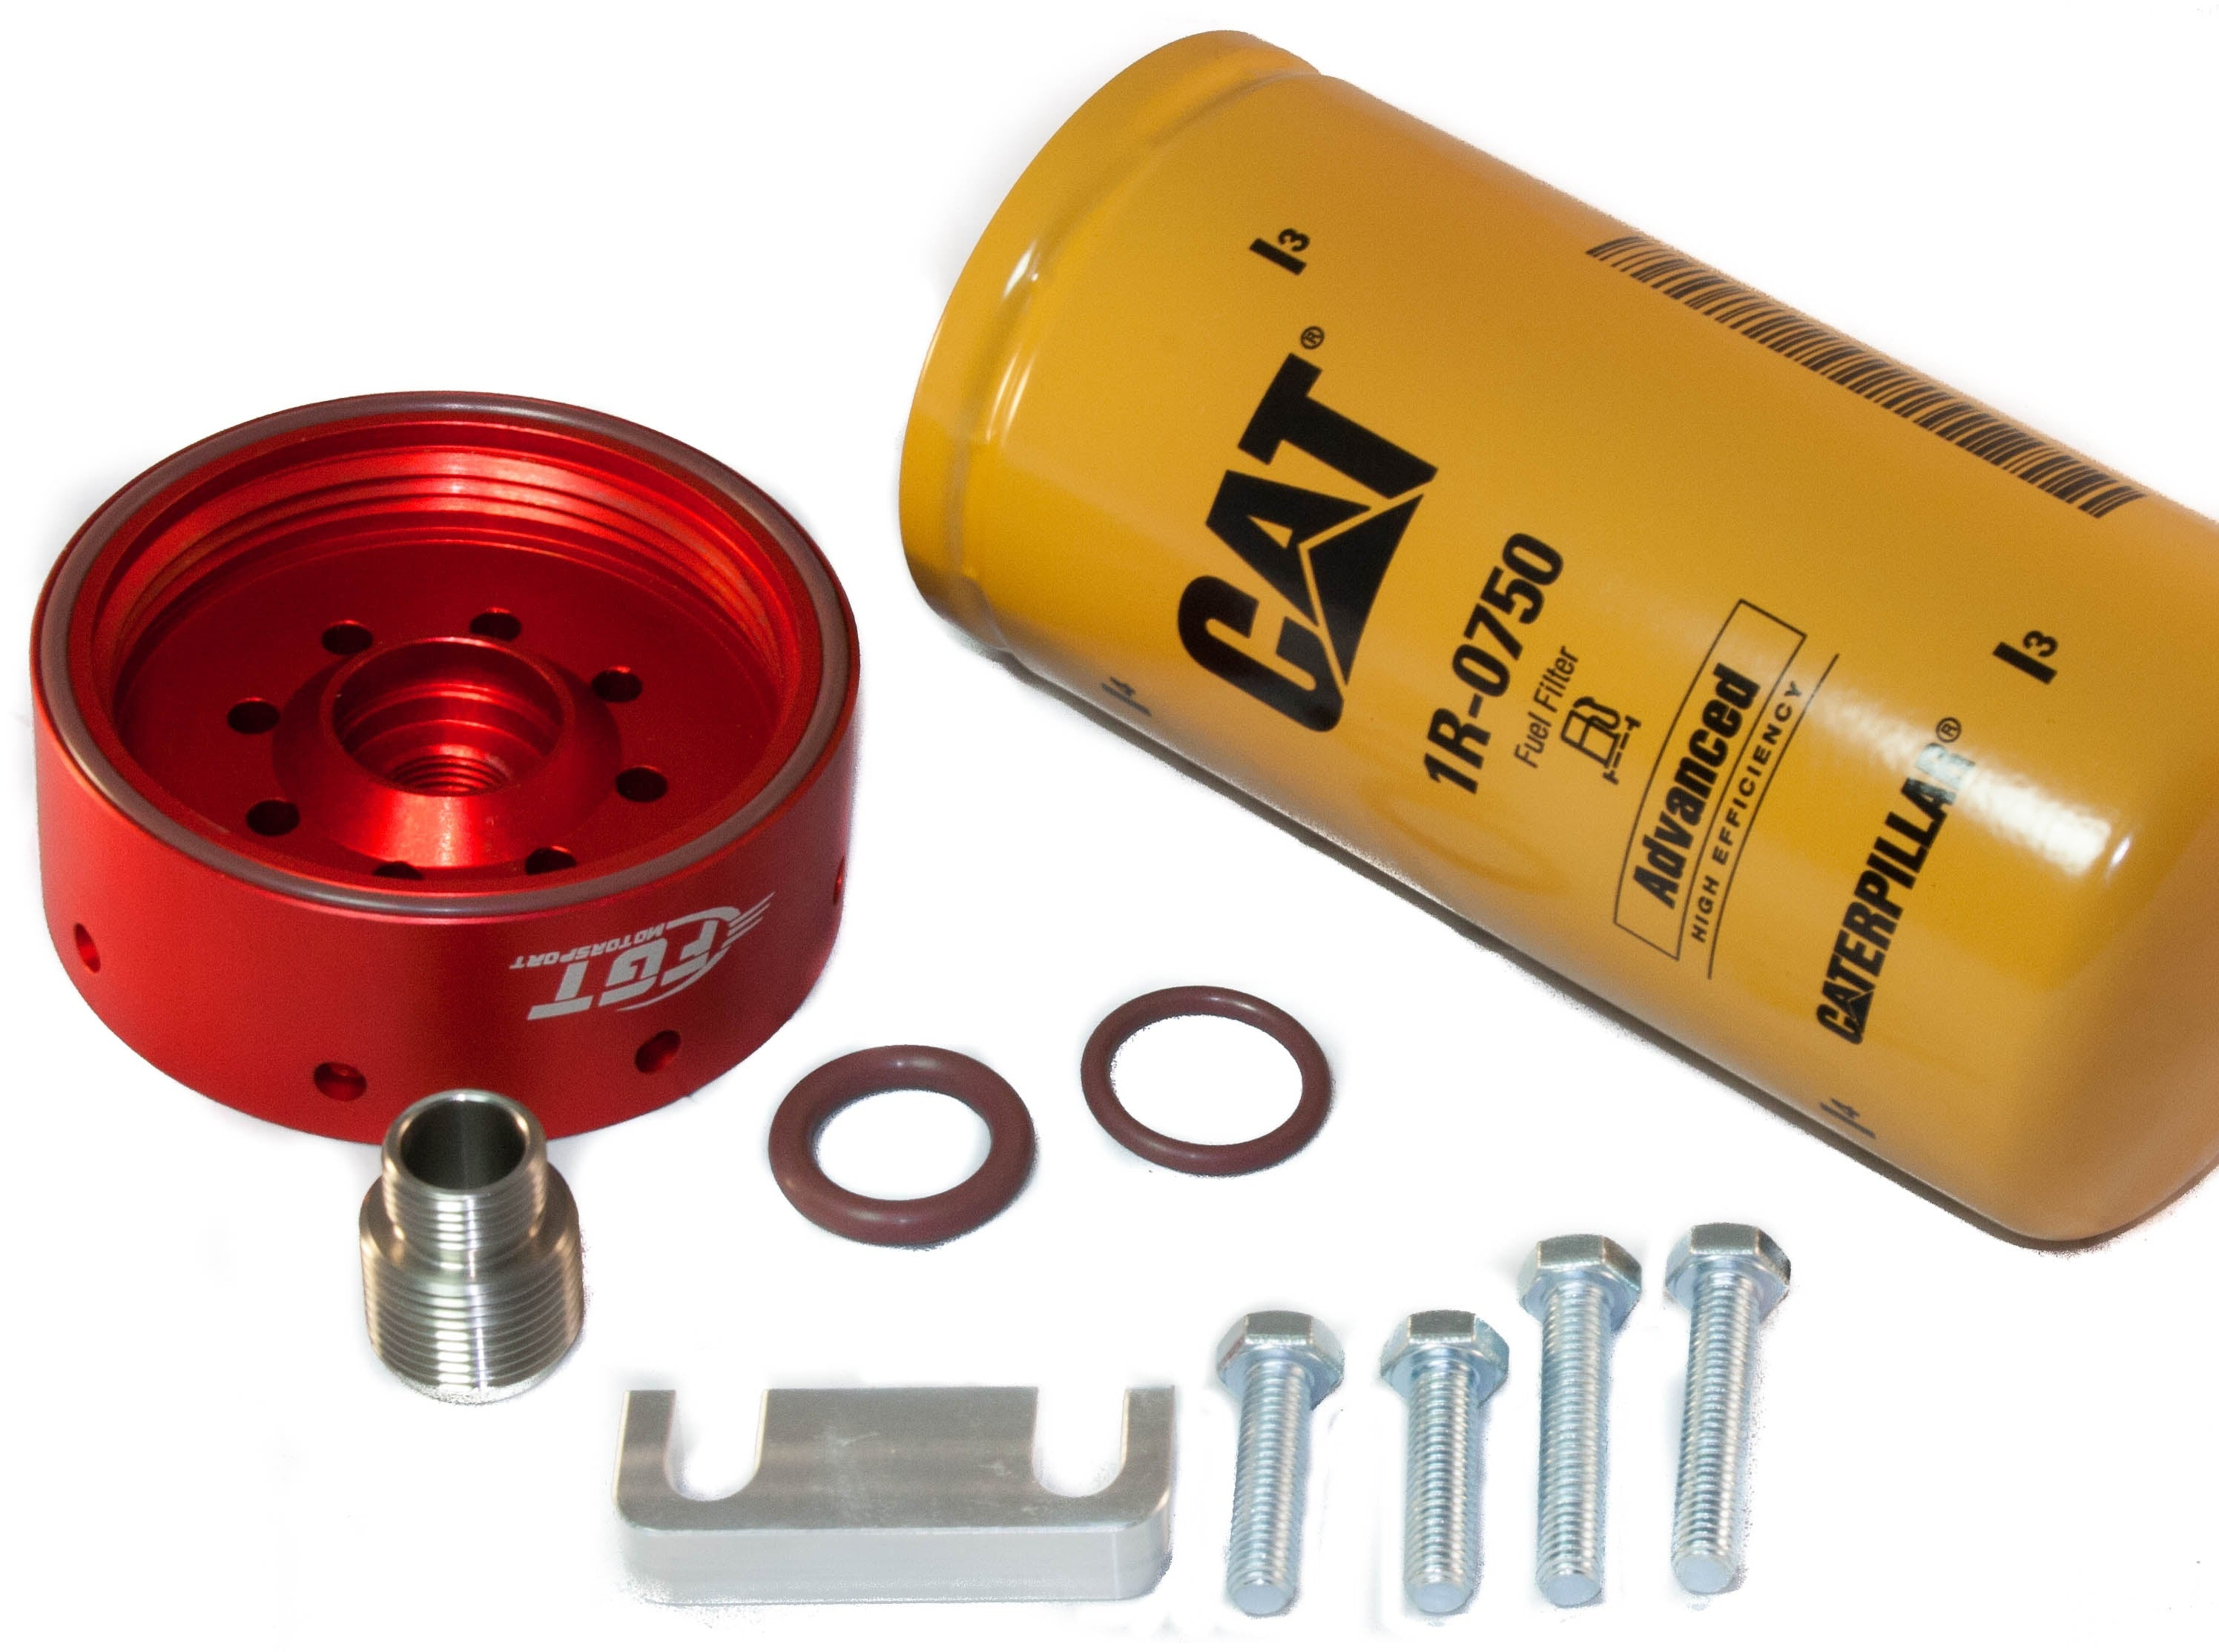 duramax auxiliary fuel filter cat fuel filter adapter kit for 01-16' duramax lb7/lly/lbz/lmm/lml chevy gmc duramax cat fuel filter